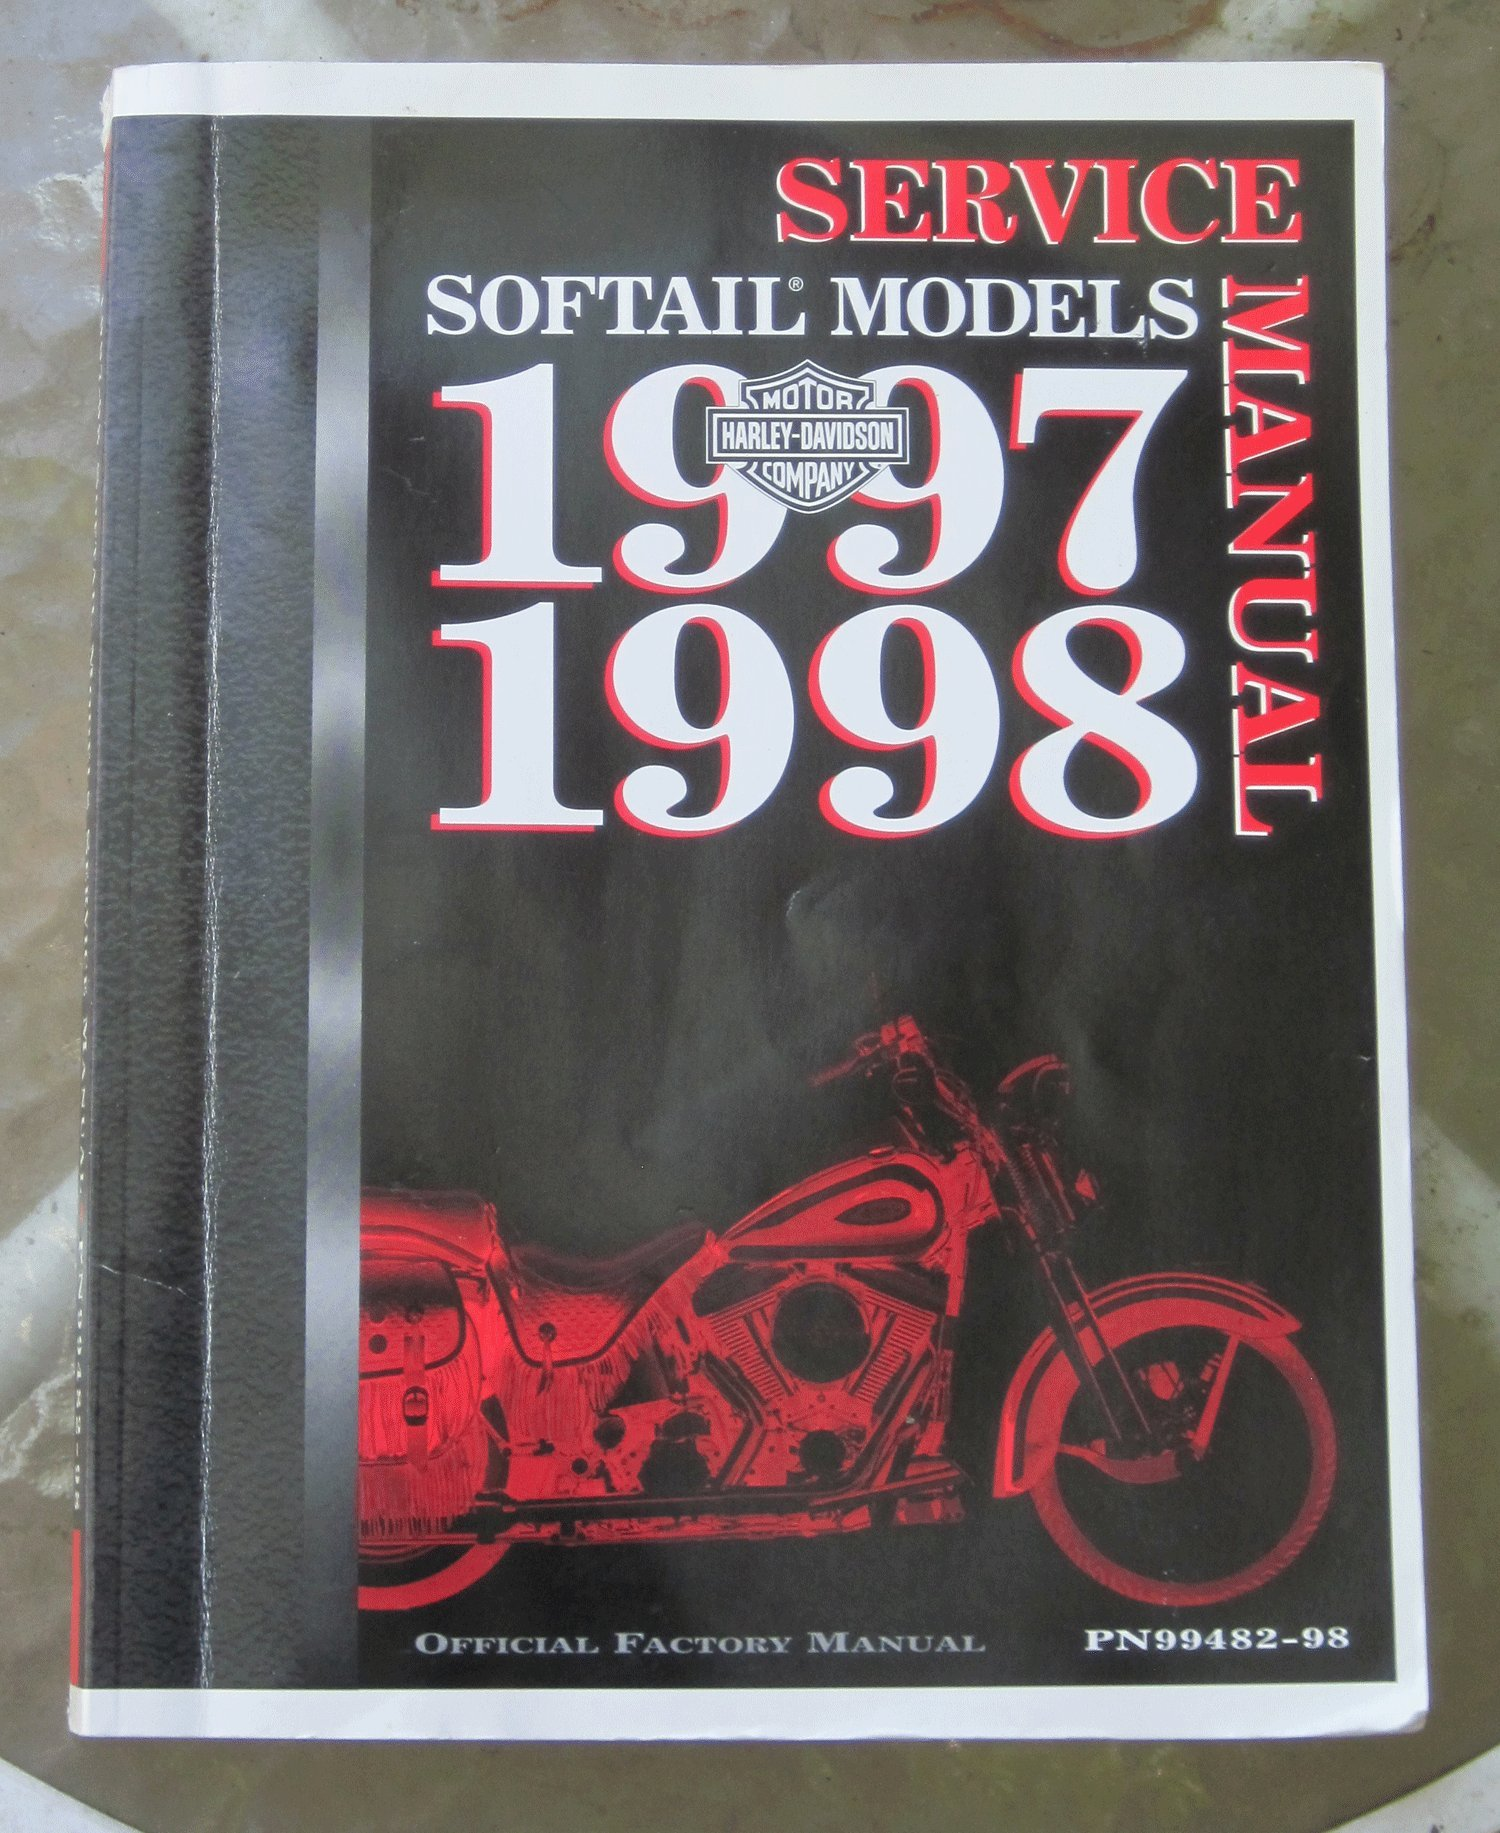 Harley-Davidson Motor Company Service Manual Softail Models 1997 1998.  Official Factory Manual PN99482-98: N/a: Amazon.com: Books